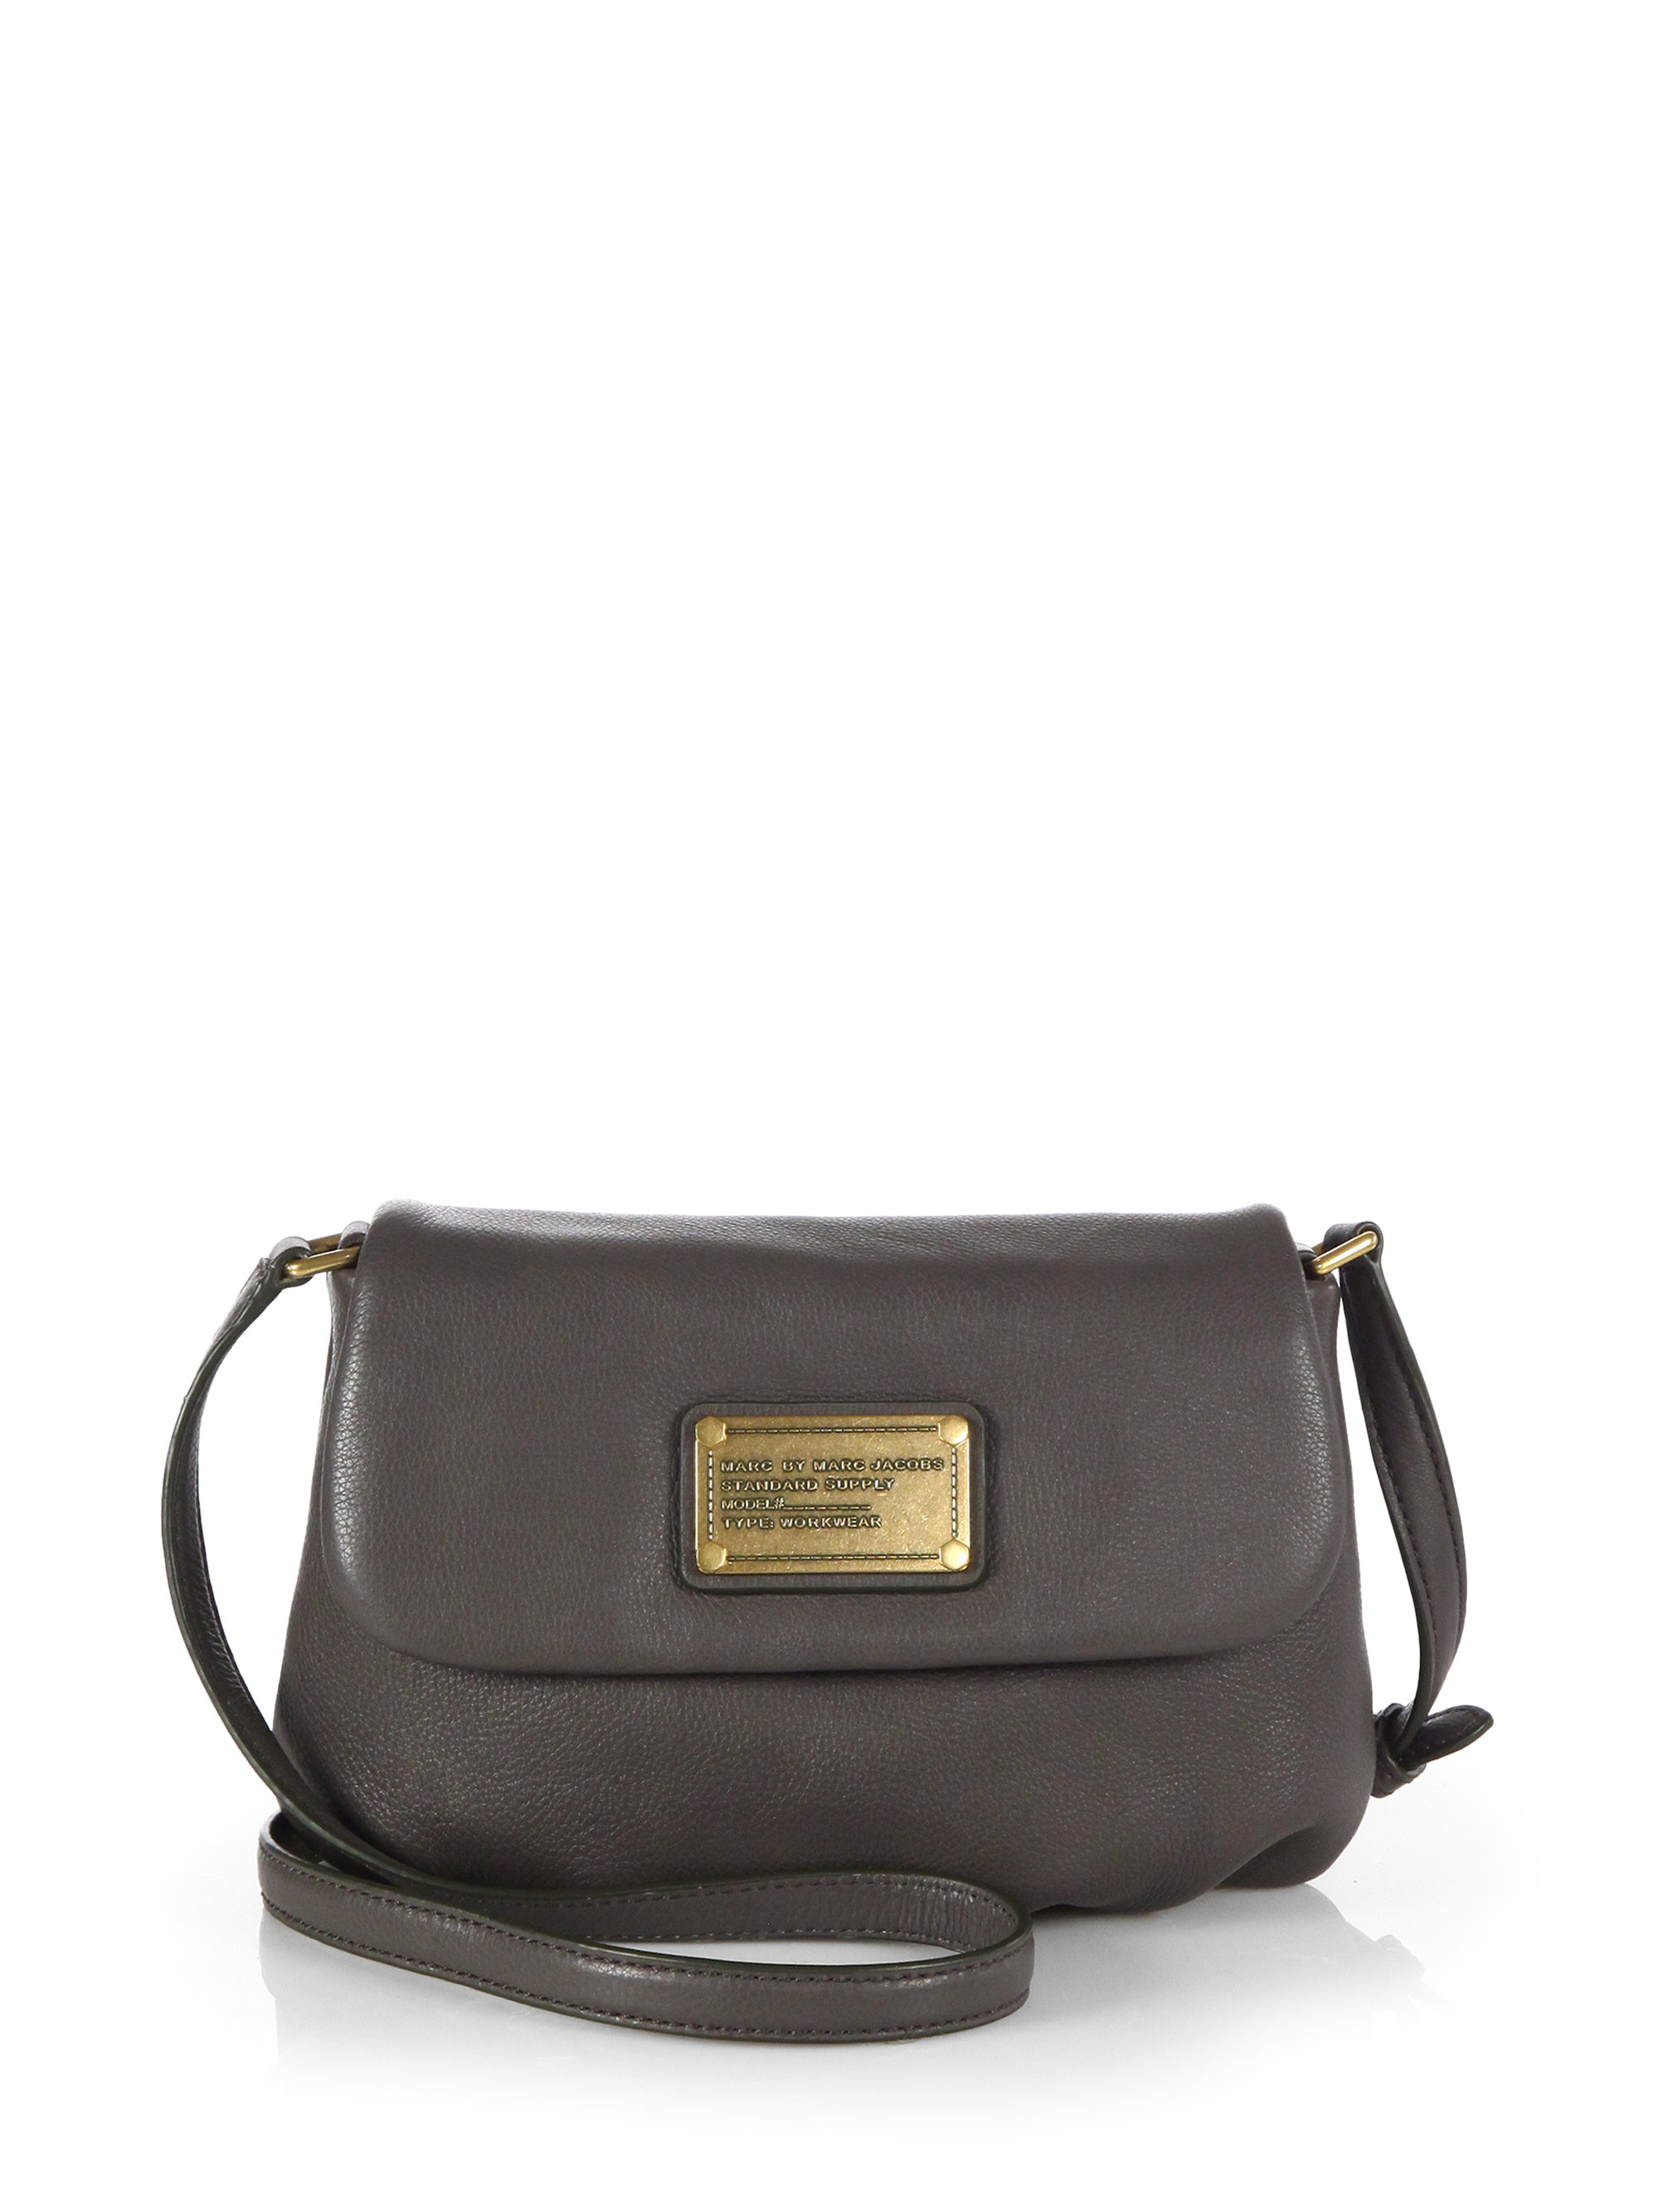 3cd1f4434f9a Lyst - Marc By Marc Jacobs Classic Q Flap Percy Shoulder Bag in Gray